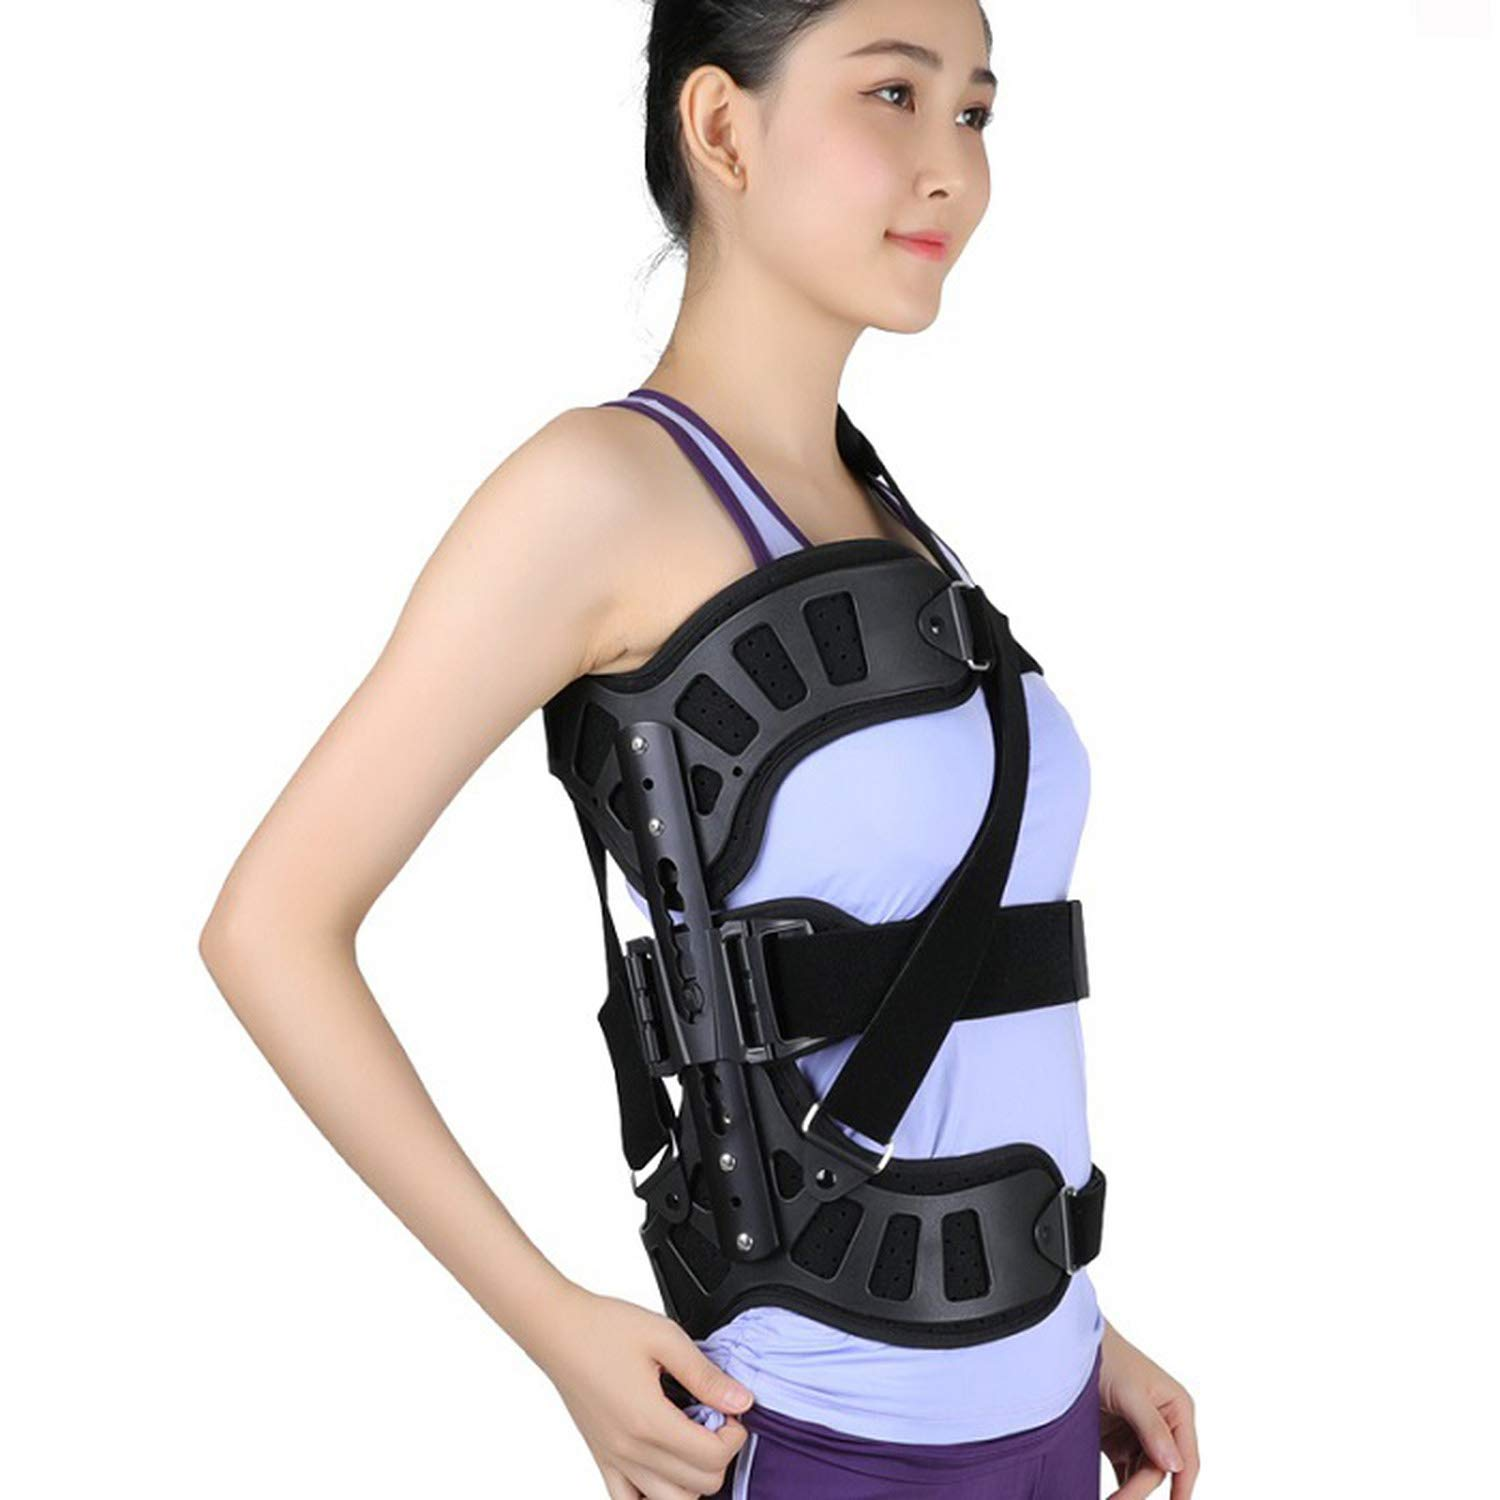 Scoliosis Posture Corrector Adjustable Spinal Auxiliary for Back Recovery Men and Women Adults,Black,Medium